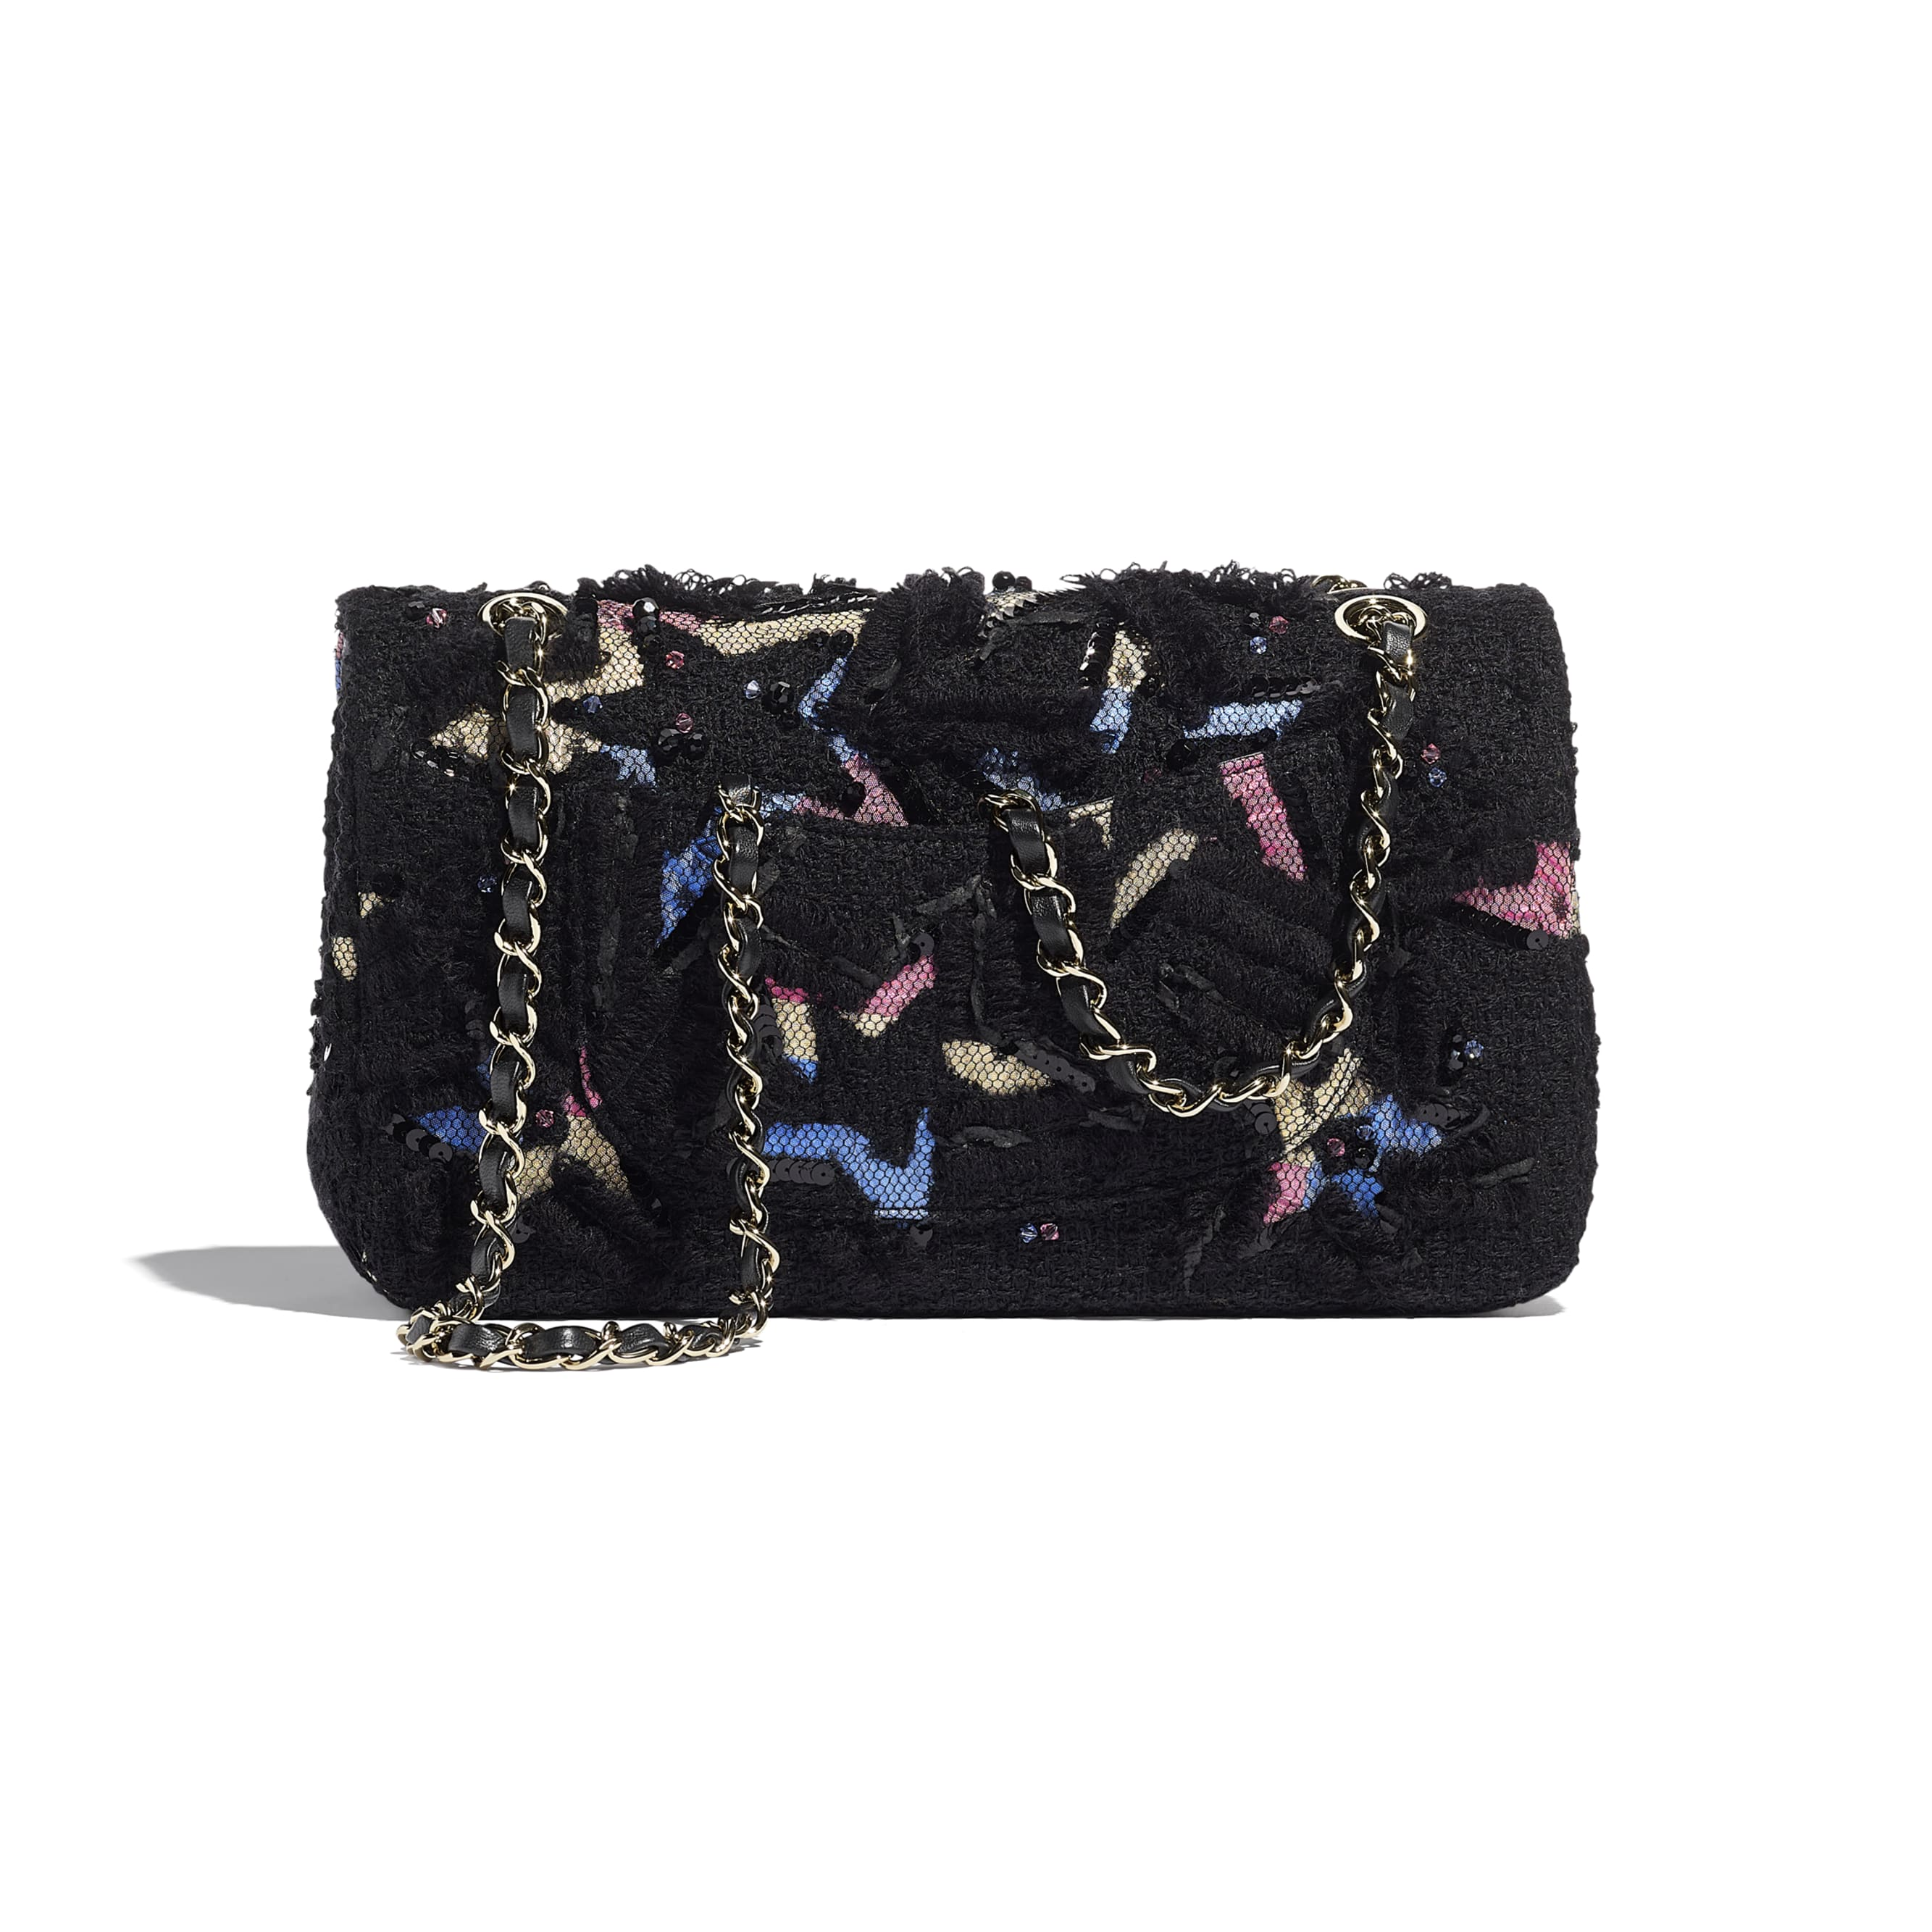 Classic Handbag - Black - Tweed, Cotton, Mixed Fibers, Sequins, Glass Pearls & Gold-Tone Metal - CHANEL - Alternative view - see standard sized version